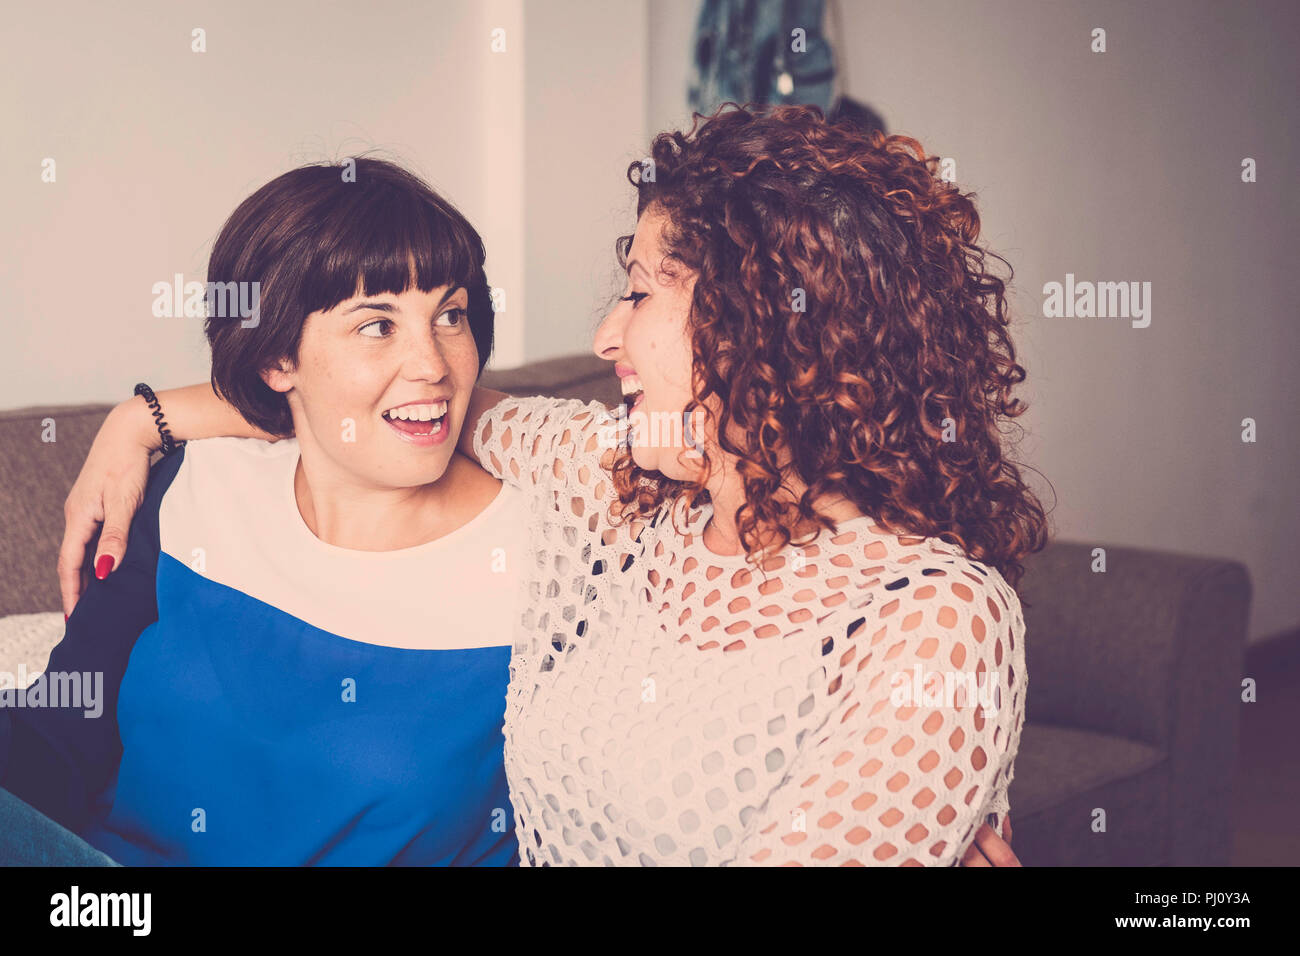 nice time and happiness with laugh and smiles for two caucasian friends lay down together on the sofa at home. friendship concept for indoor picture w - Stock Image